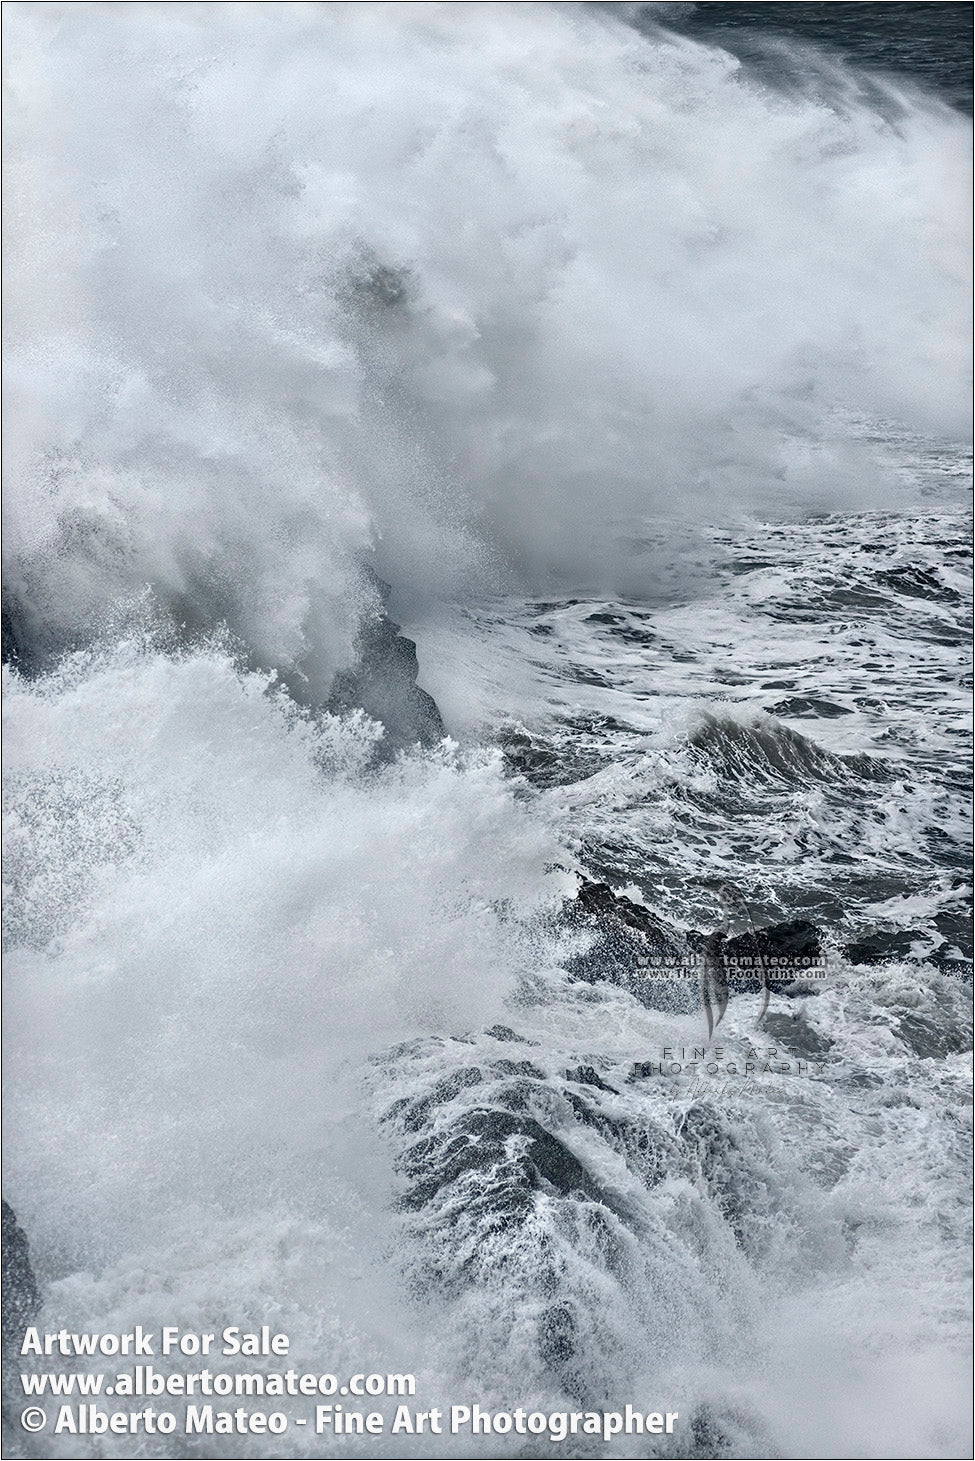 Sea Gale, Breaking Waves, Dyorhaley, Iceland. 4/5